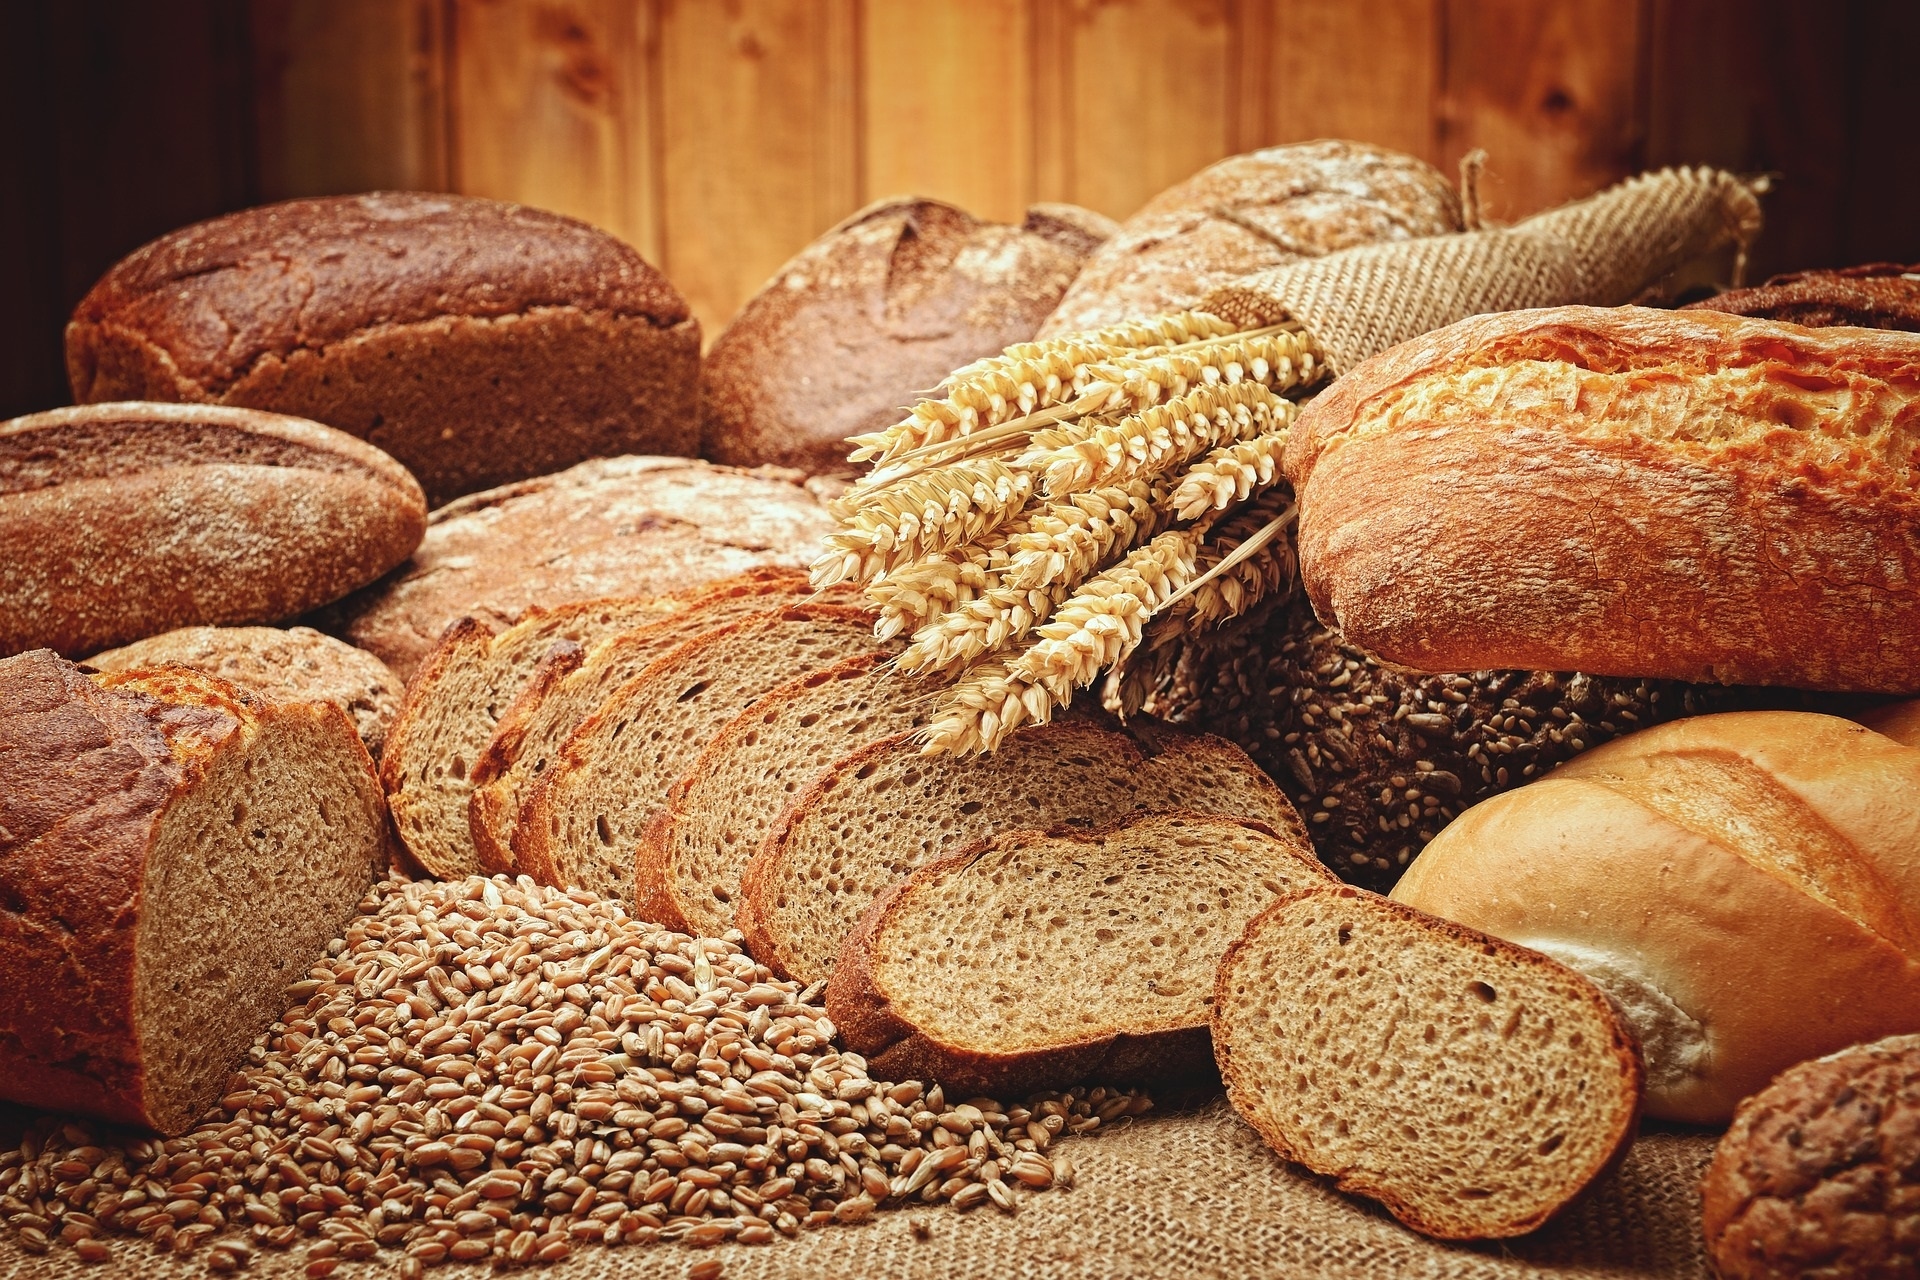 Lack of essential nutrients in gluten free products